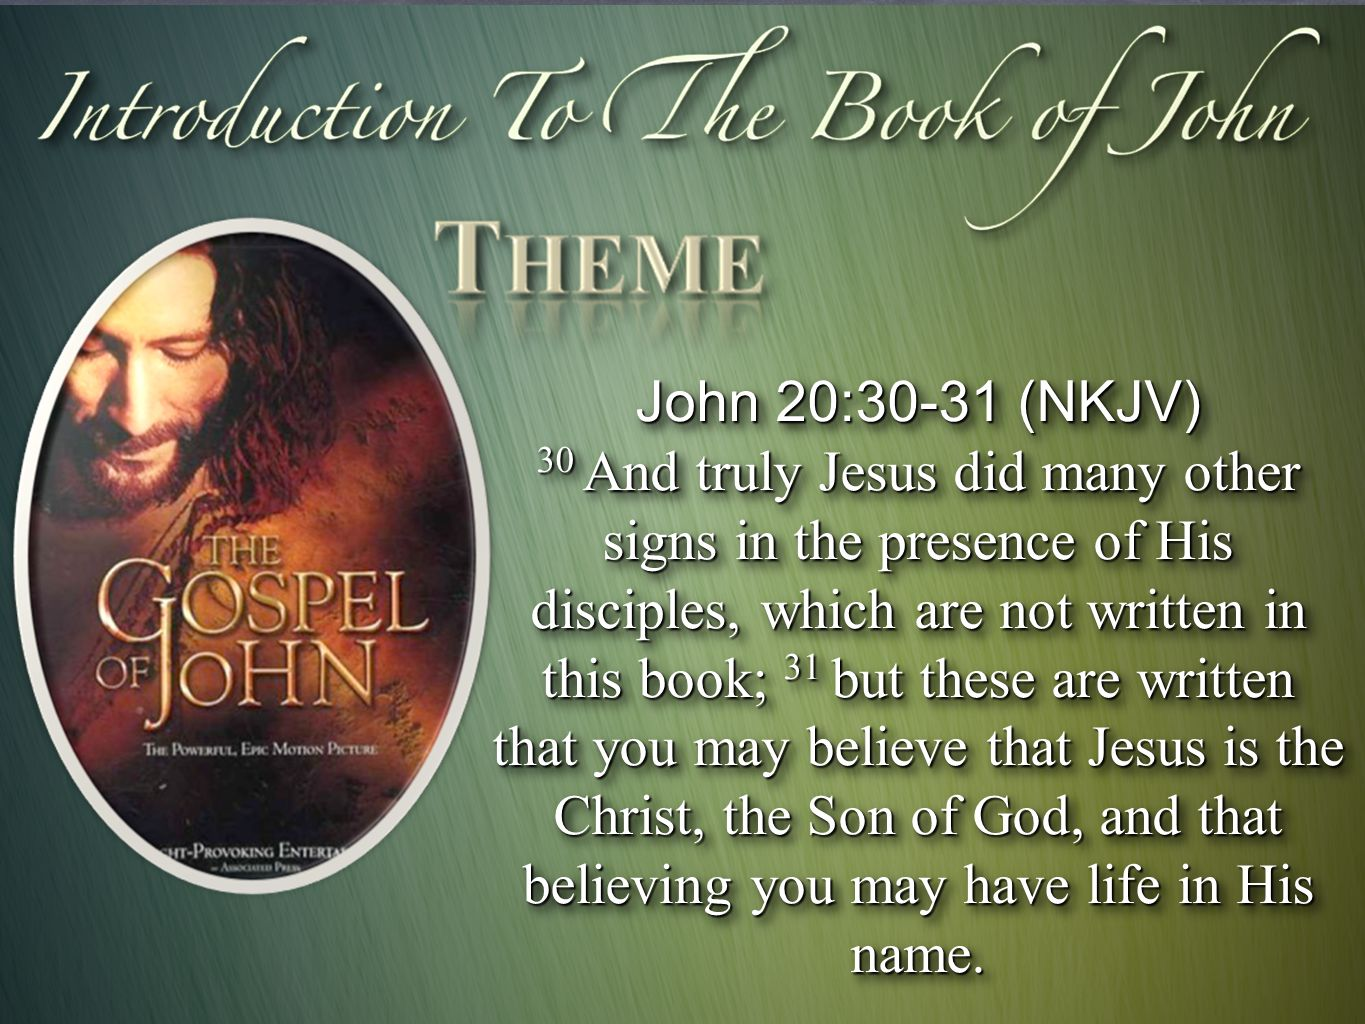 John 20:30-31 (NKJV) 30 And truly Jesus did many other signs in the presence of His disciples, which are not written in this book; 31 but these are written that you may believe that Jesus is the Christ, the Son of God, and that believing you may have life in His name.